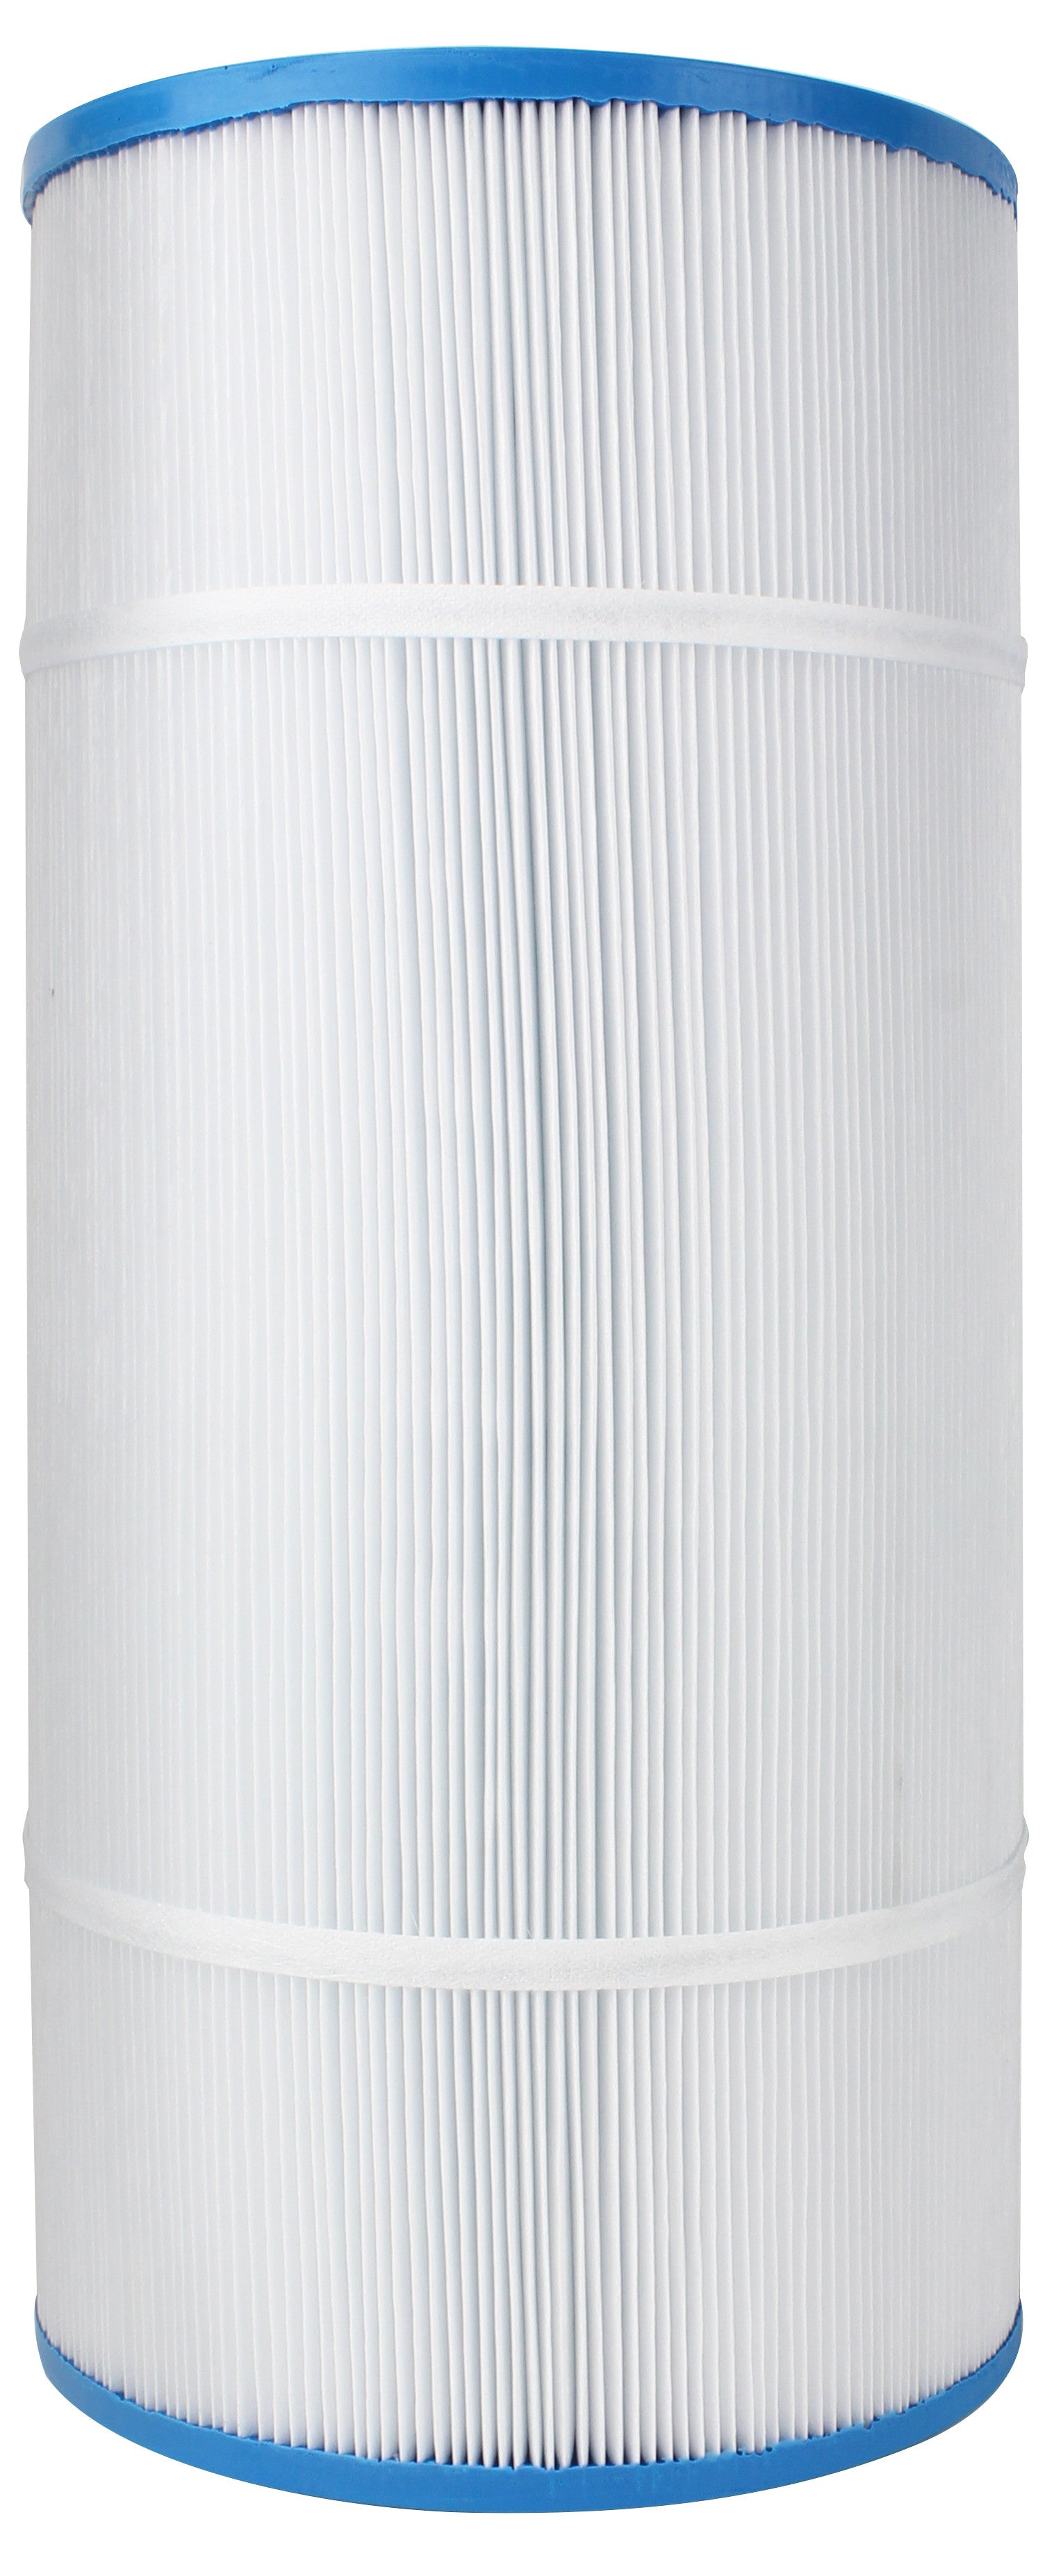 Replaces Unicel C-8326, Pleatco PSD125-2000 • Pool & Spa Filter Cartridge-Filter Cartridge-FilterDeal.com